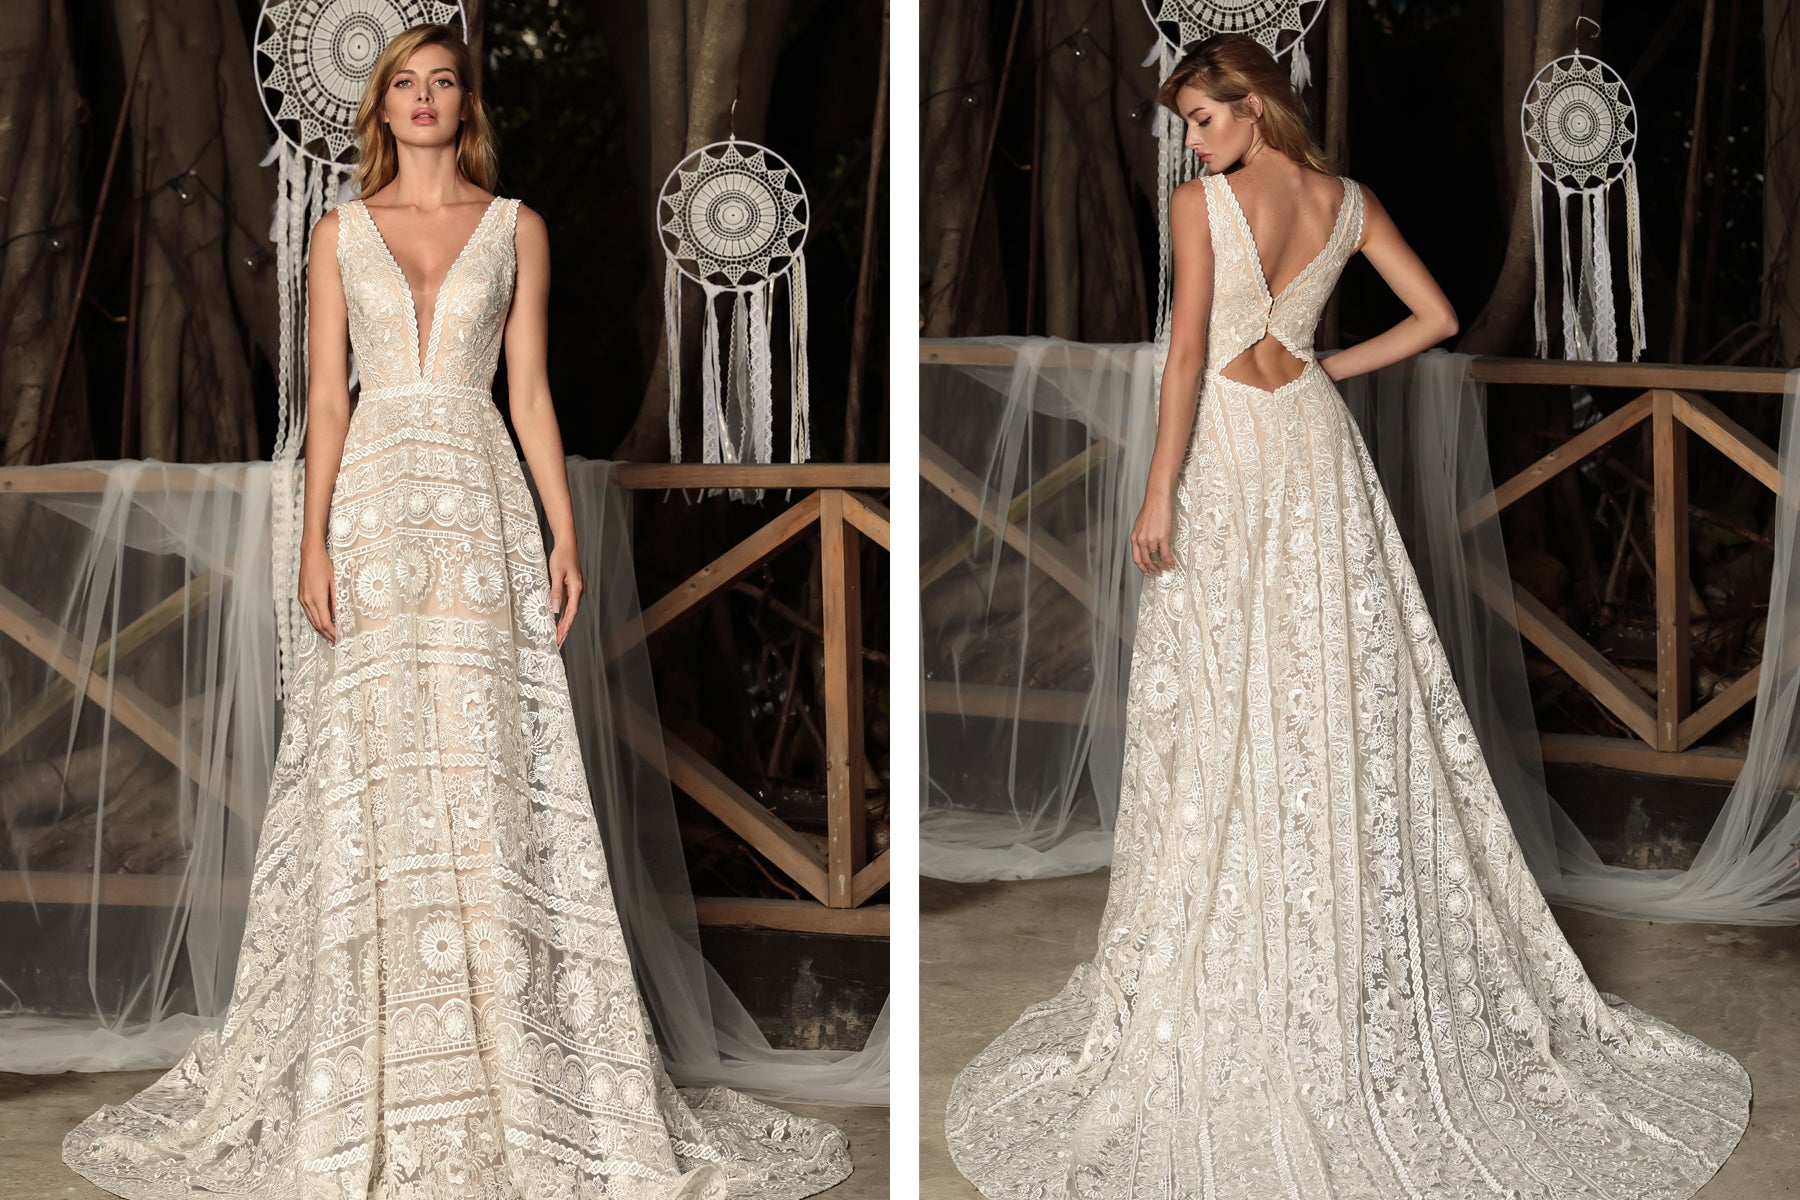 Eternal-bridal-wedding-dress-chic-nostalgia-mellow-collection-cora